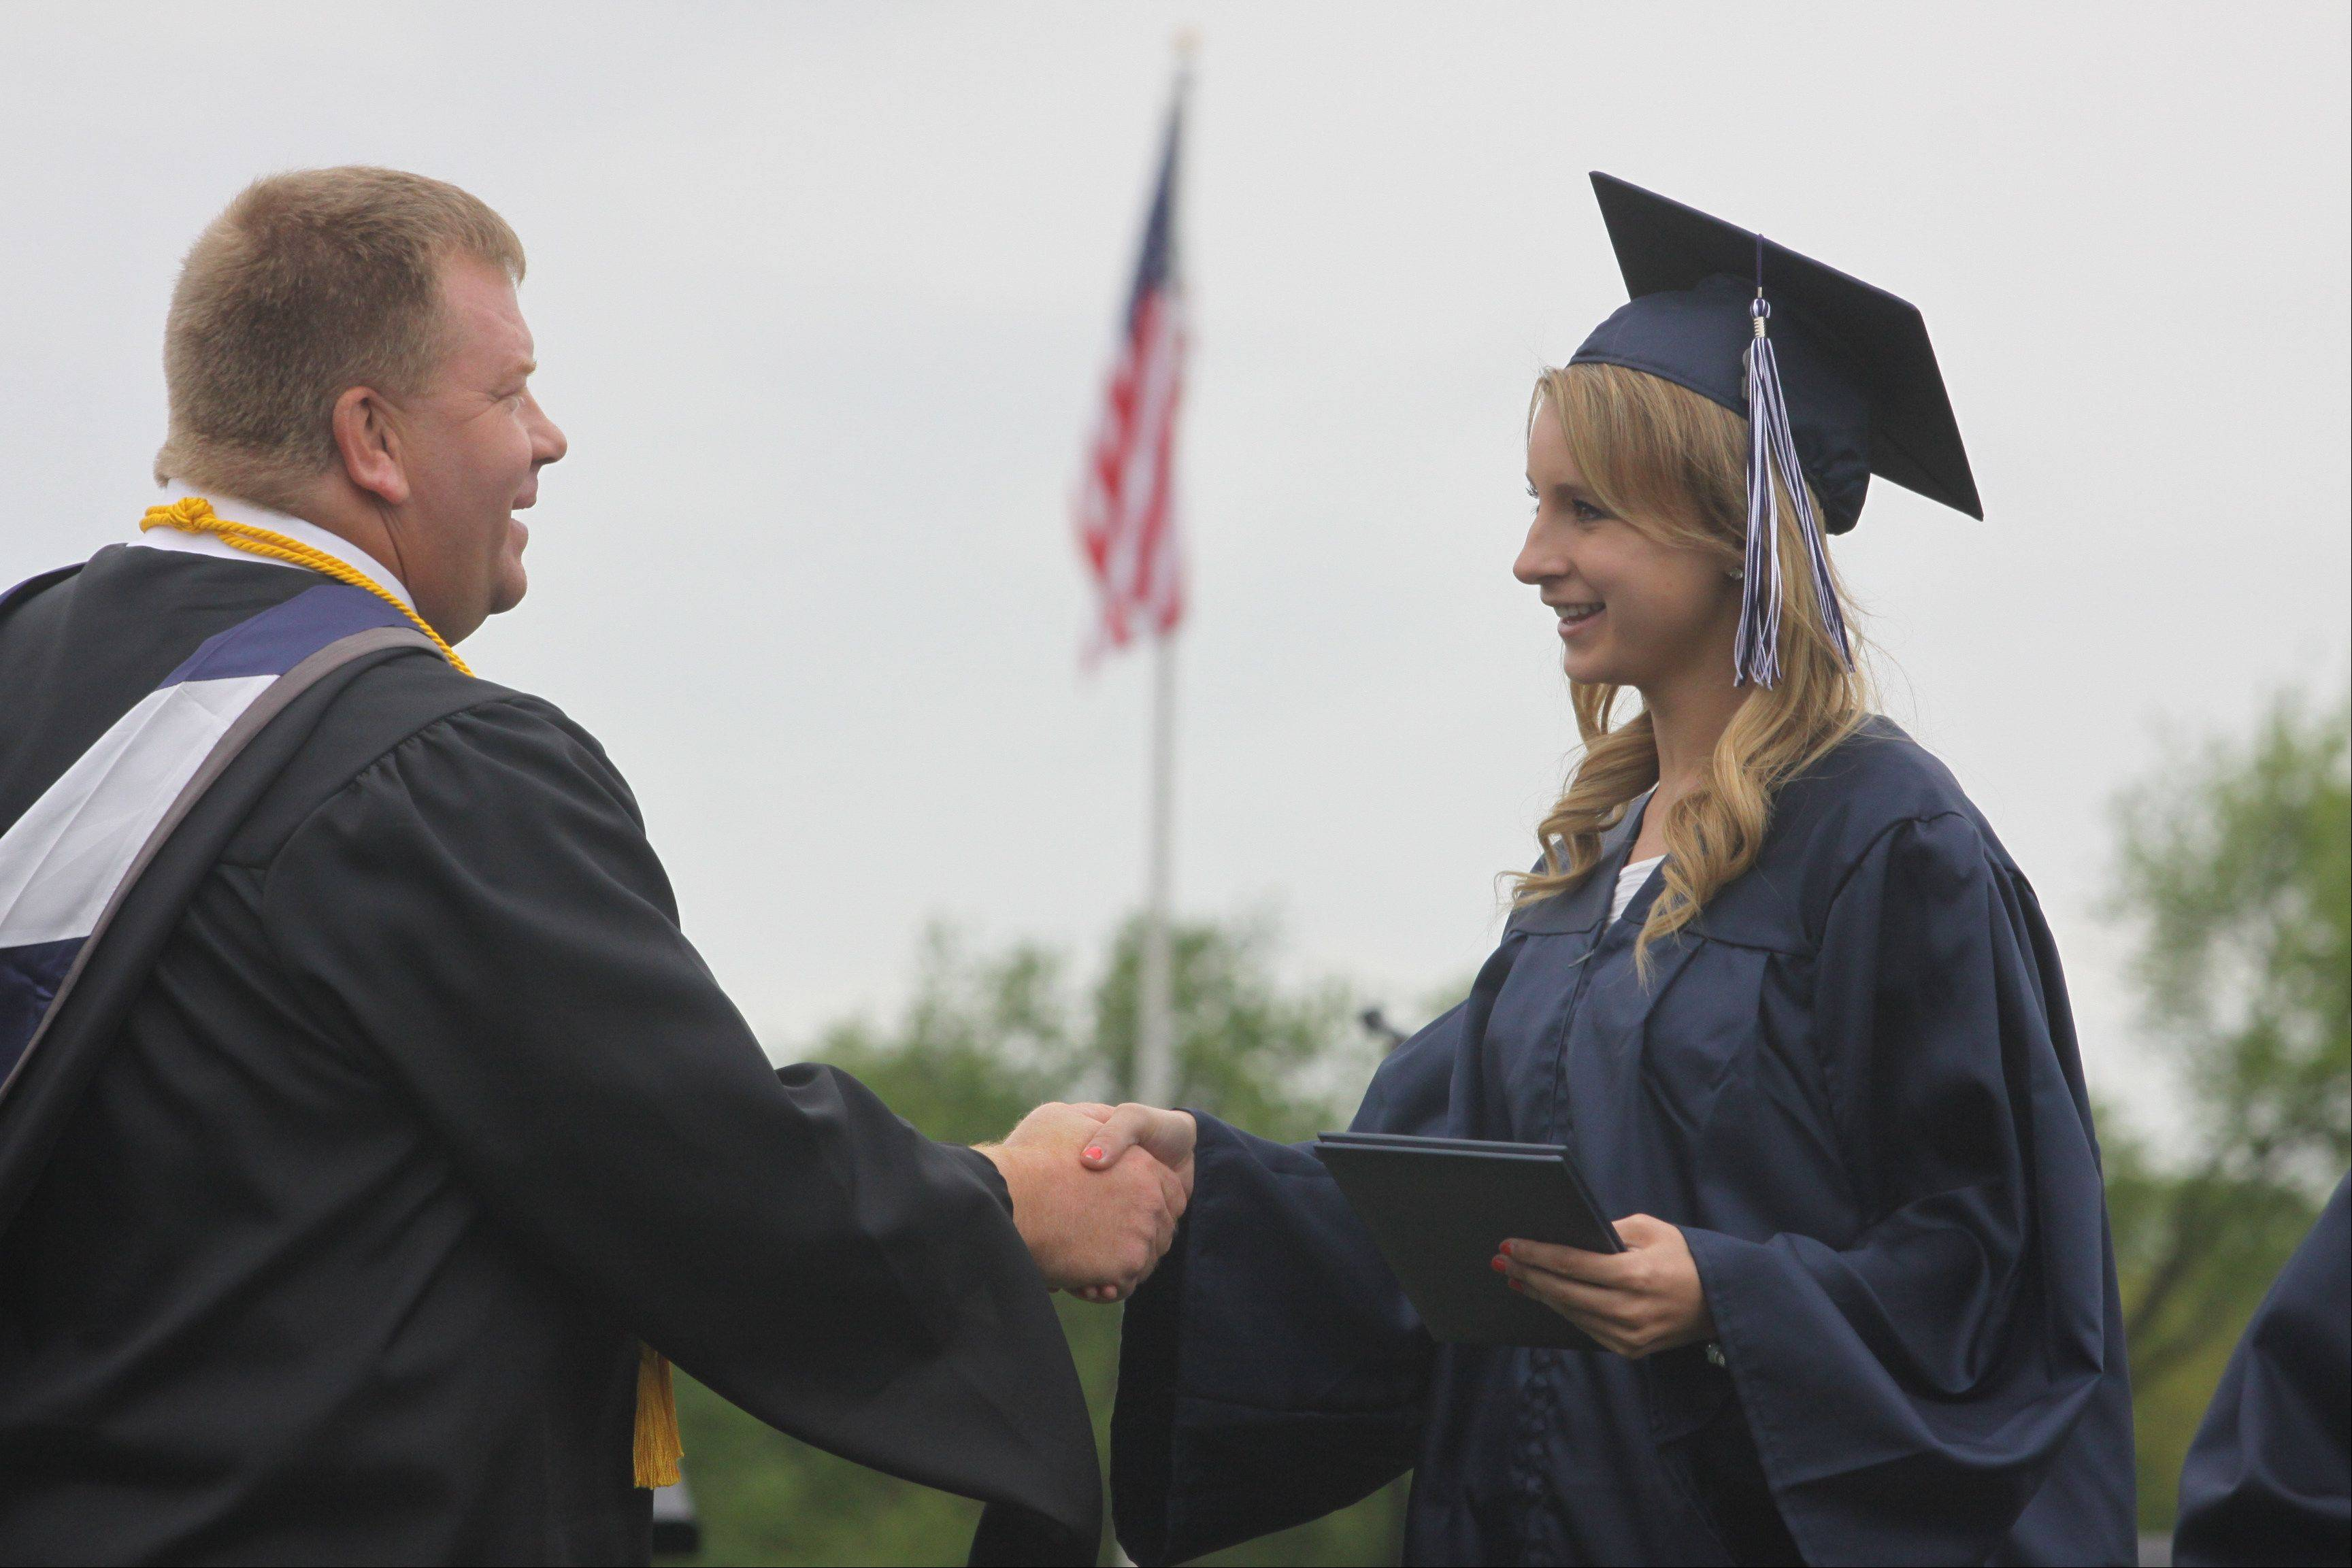 Images from the Cary-Grove High School commencement ceremony at Al Bohrer Athletic Field Saturday, May 25, 2013 in Cary.